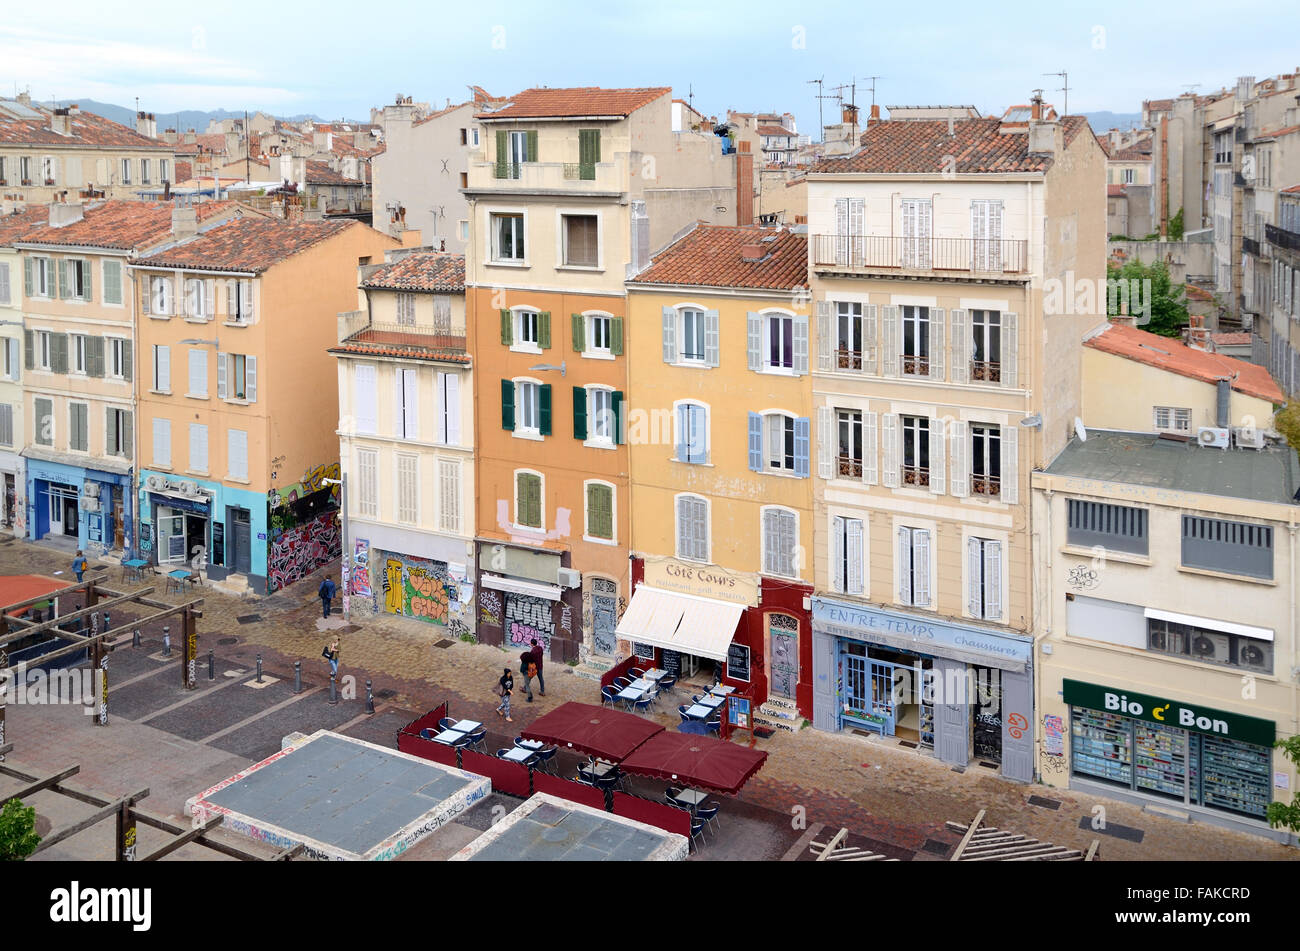 Facades of Shops & Restaurants in the Fashionable Cours Julien District Marseille France - Stock Image